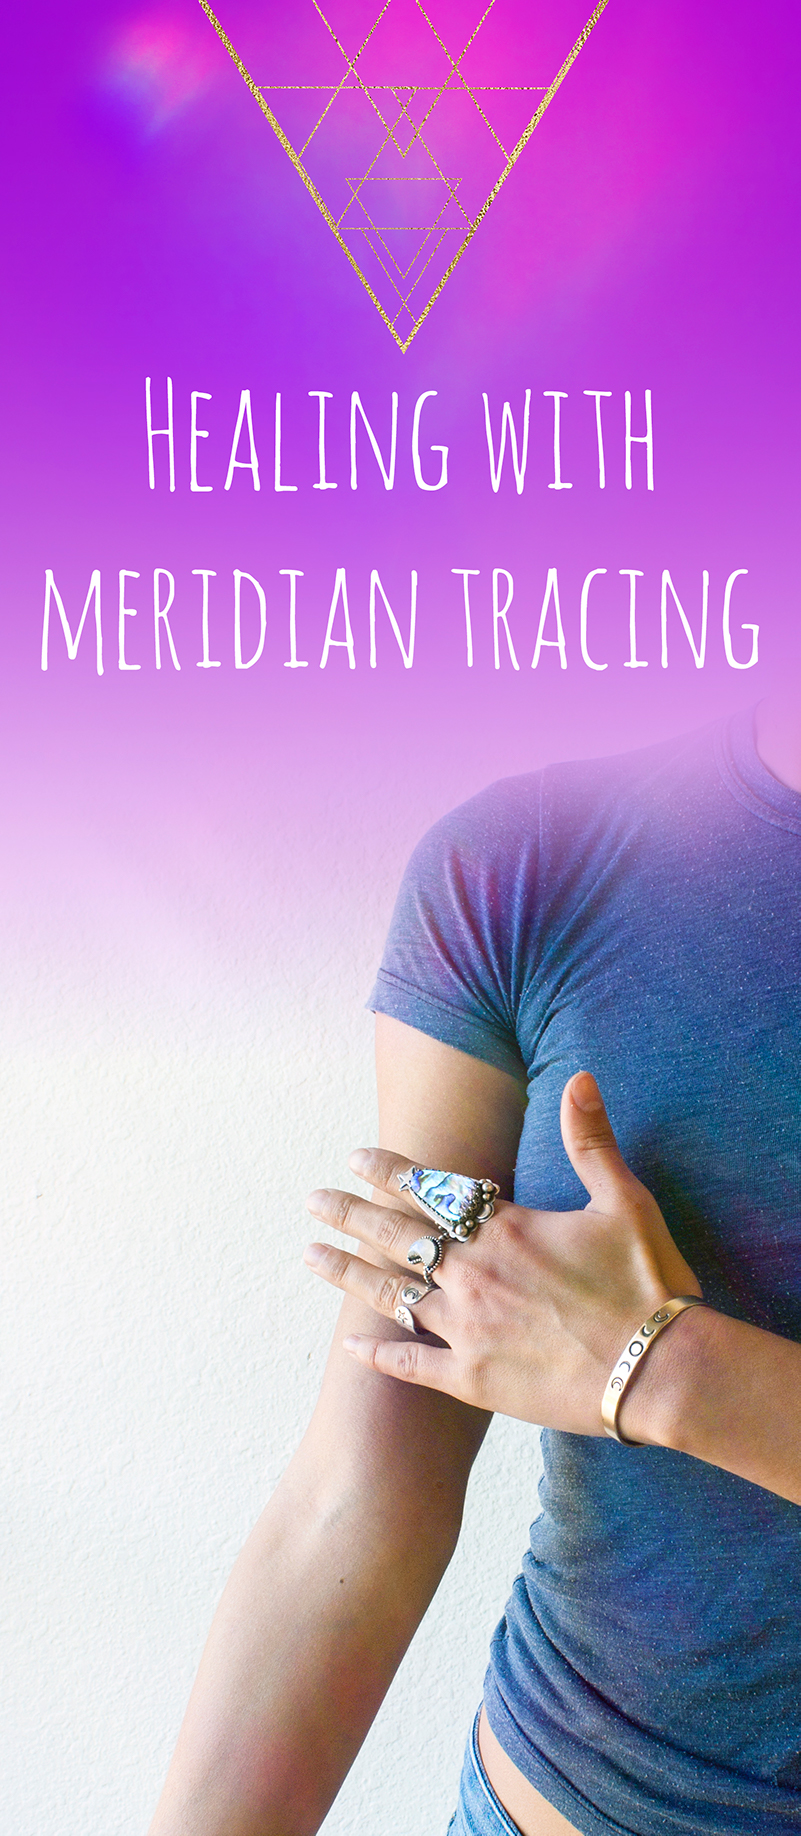 Pic-2-healing-with-meridian-tracing